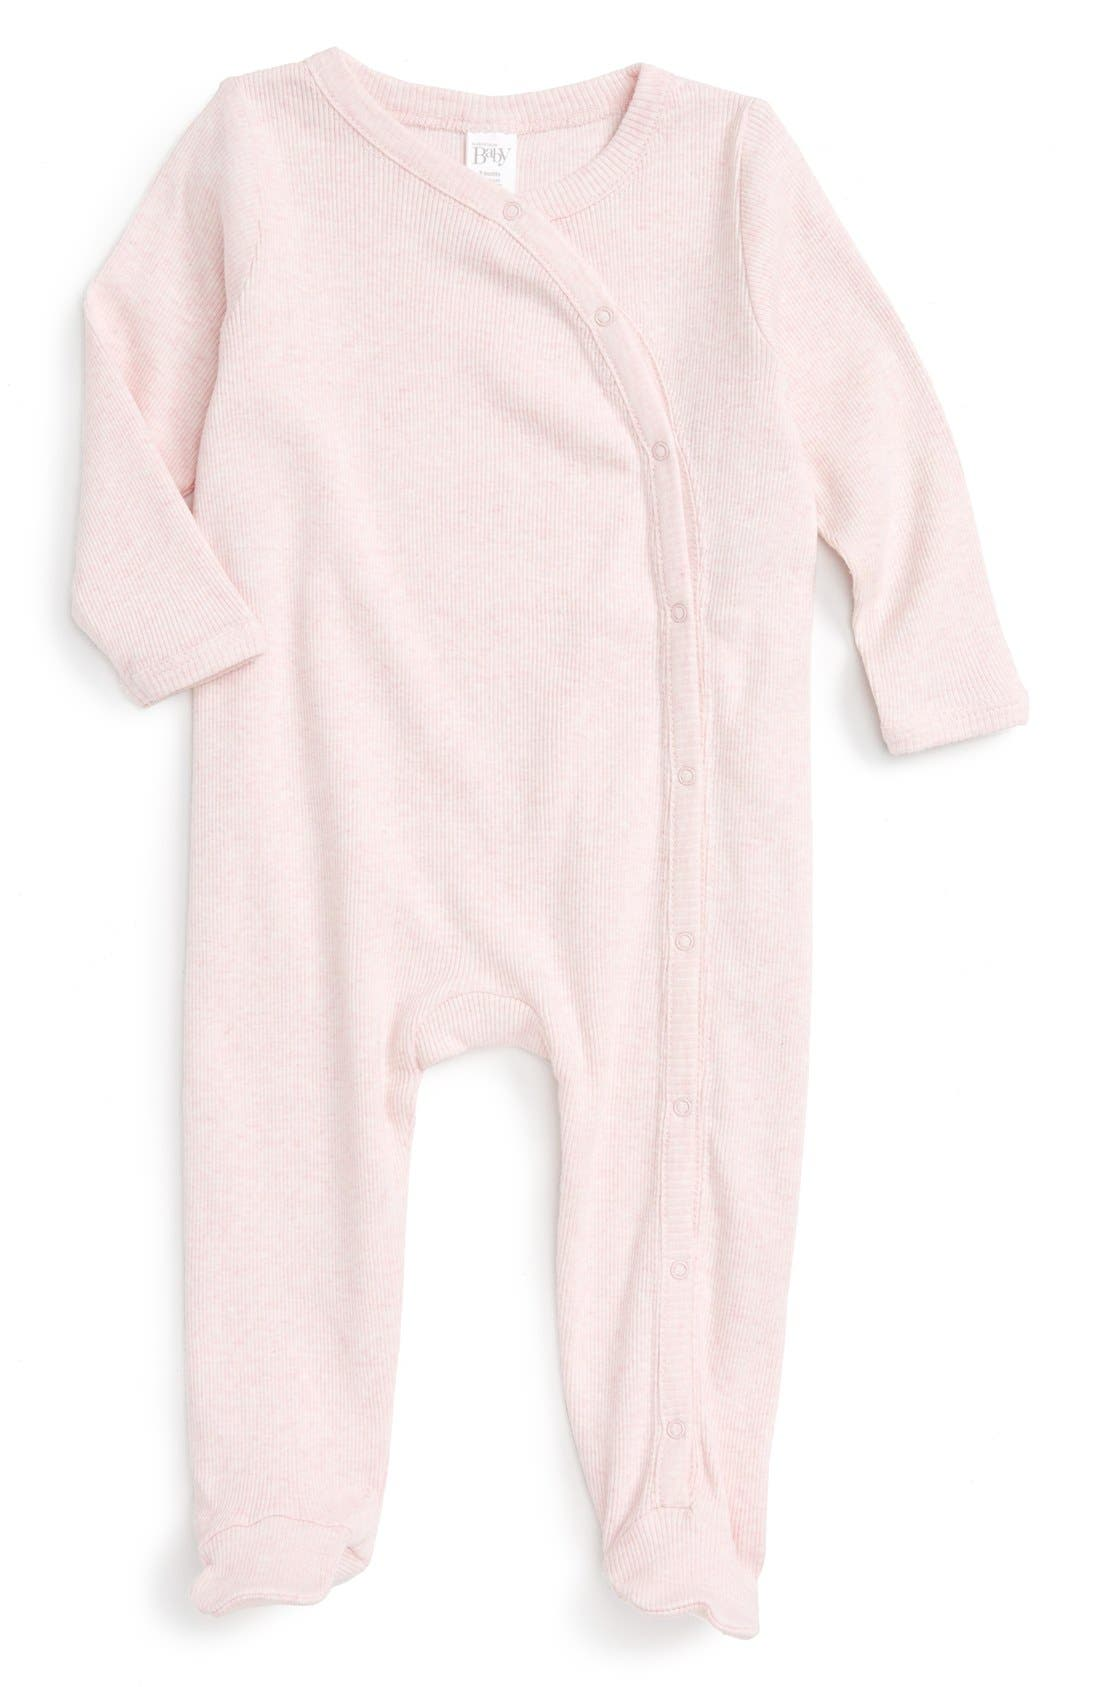 Nordstrom Baby Rib Knit Footie (Baby Girls)